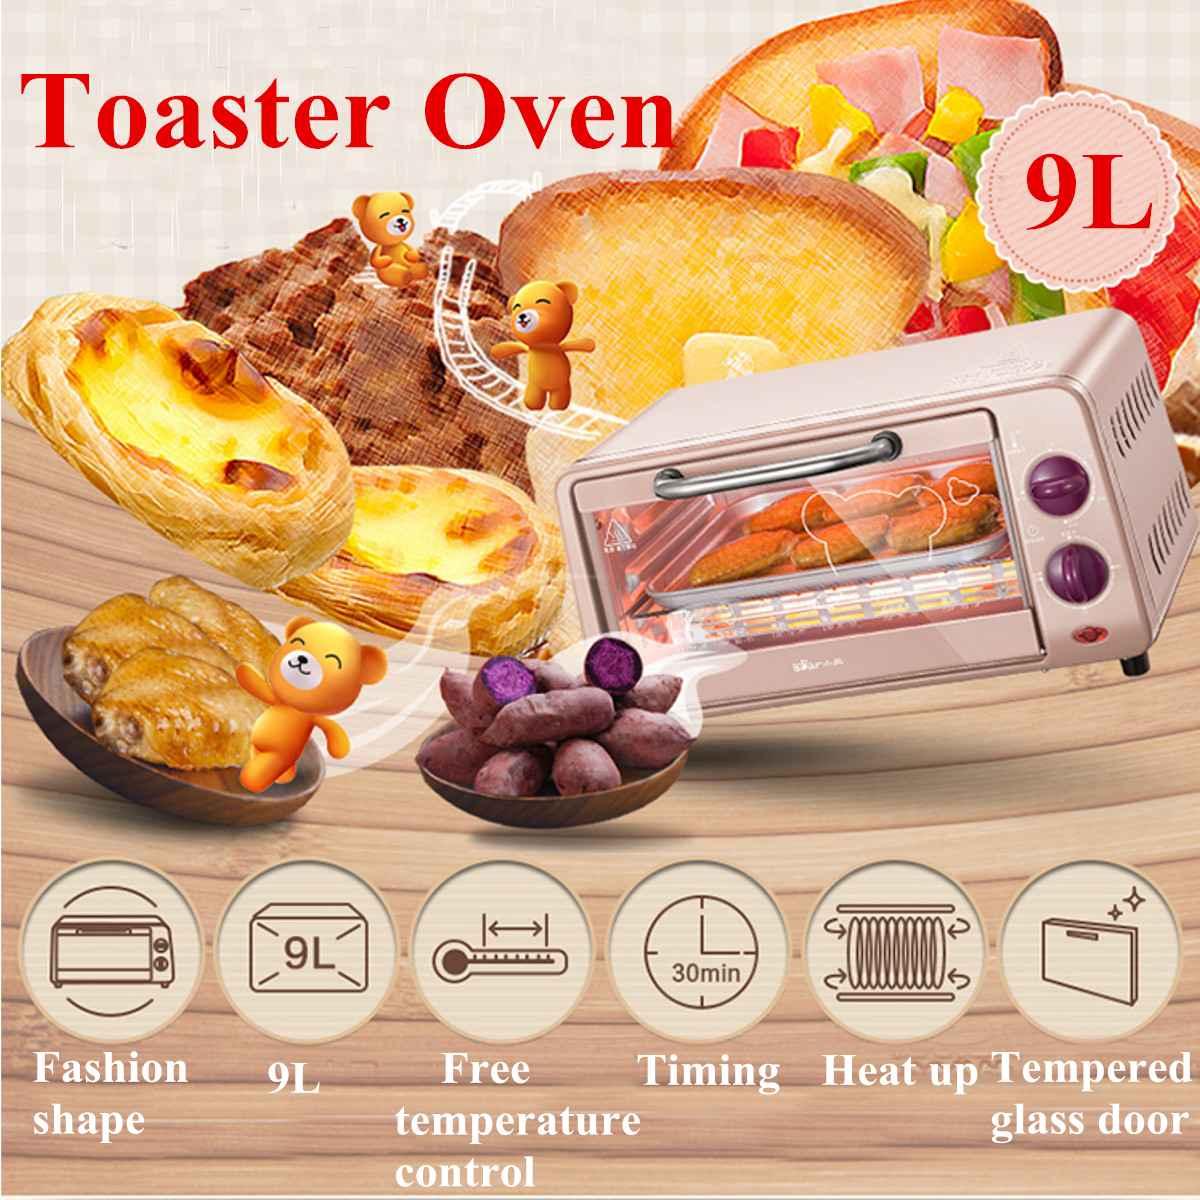 9L Electric Toaster Oven Stainless Steel Broiler Countertop Bake Mini Household Oven Multifunctional Pizza Baking Oven 800W9L Electric Toaster Oven Stainless Steel Broiler Countertop Bake Mini Household Oven Multifunctional Pizza Baking Oven 800W